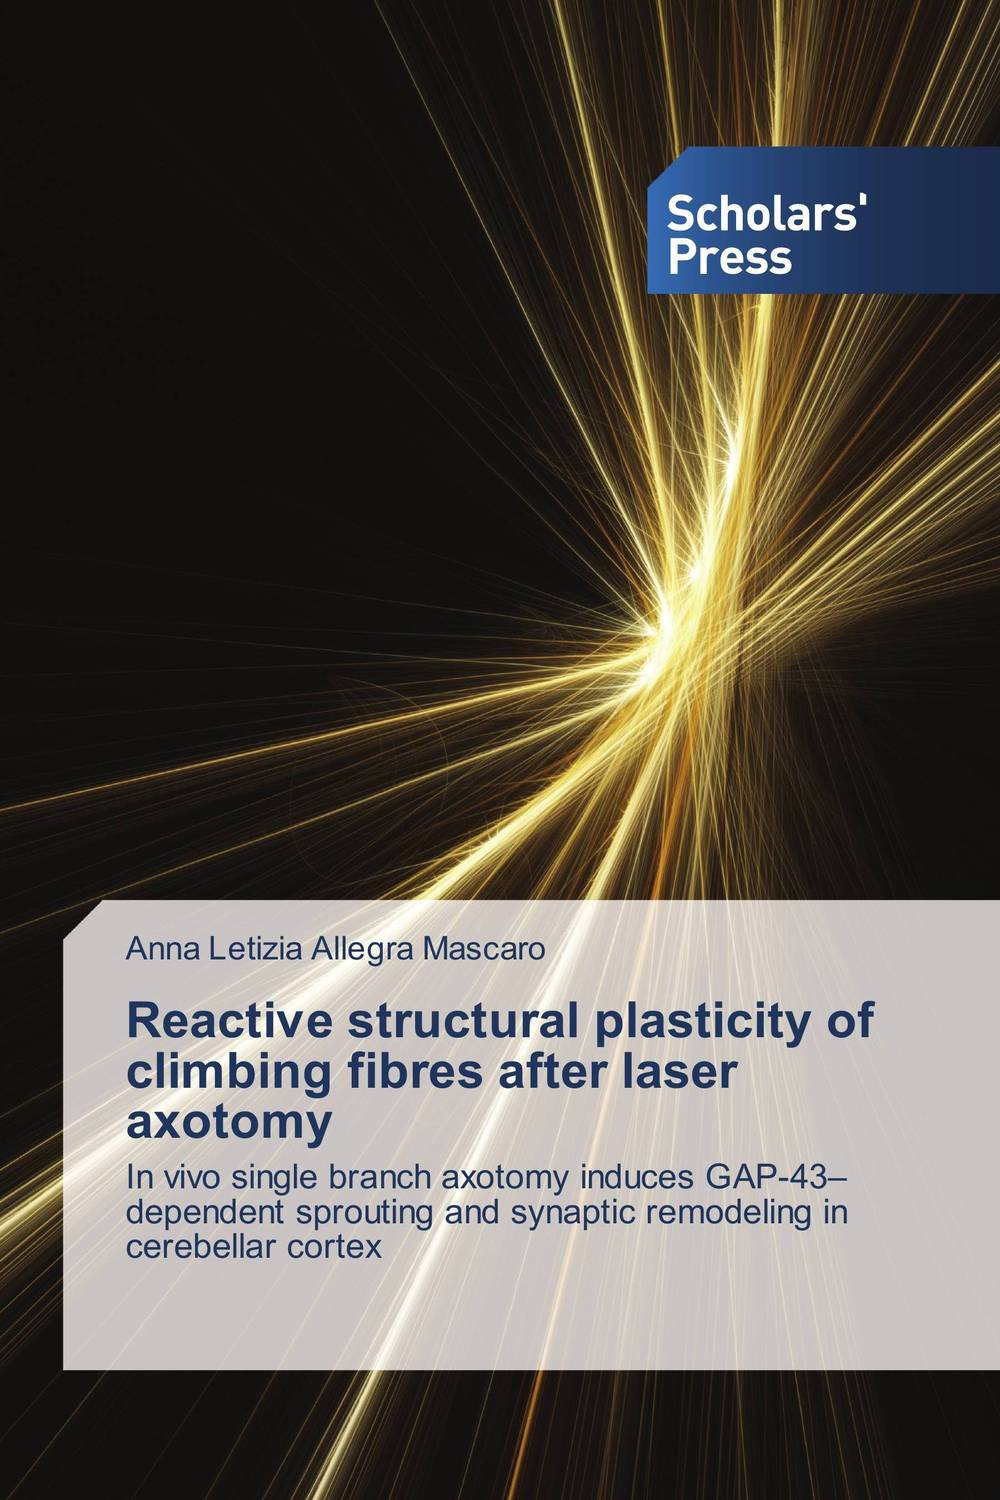 Reactive structural plasticity of climbing fibres after laser axotomy tdp 43 in the pathogenesis of amyotrophic lateral sclerosis als